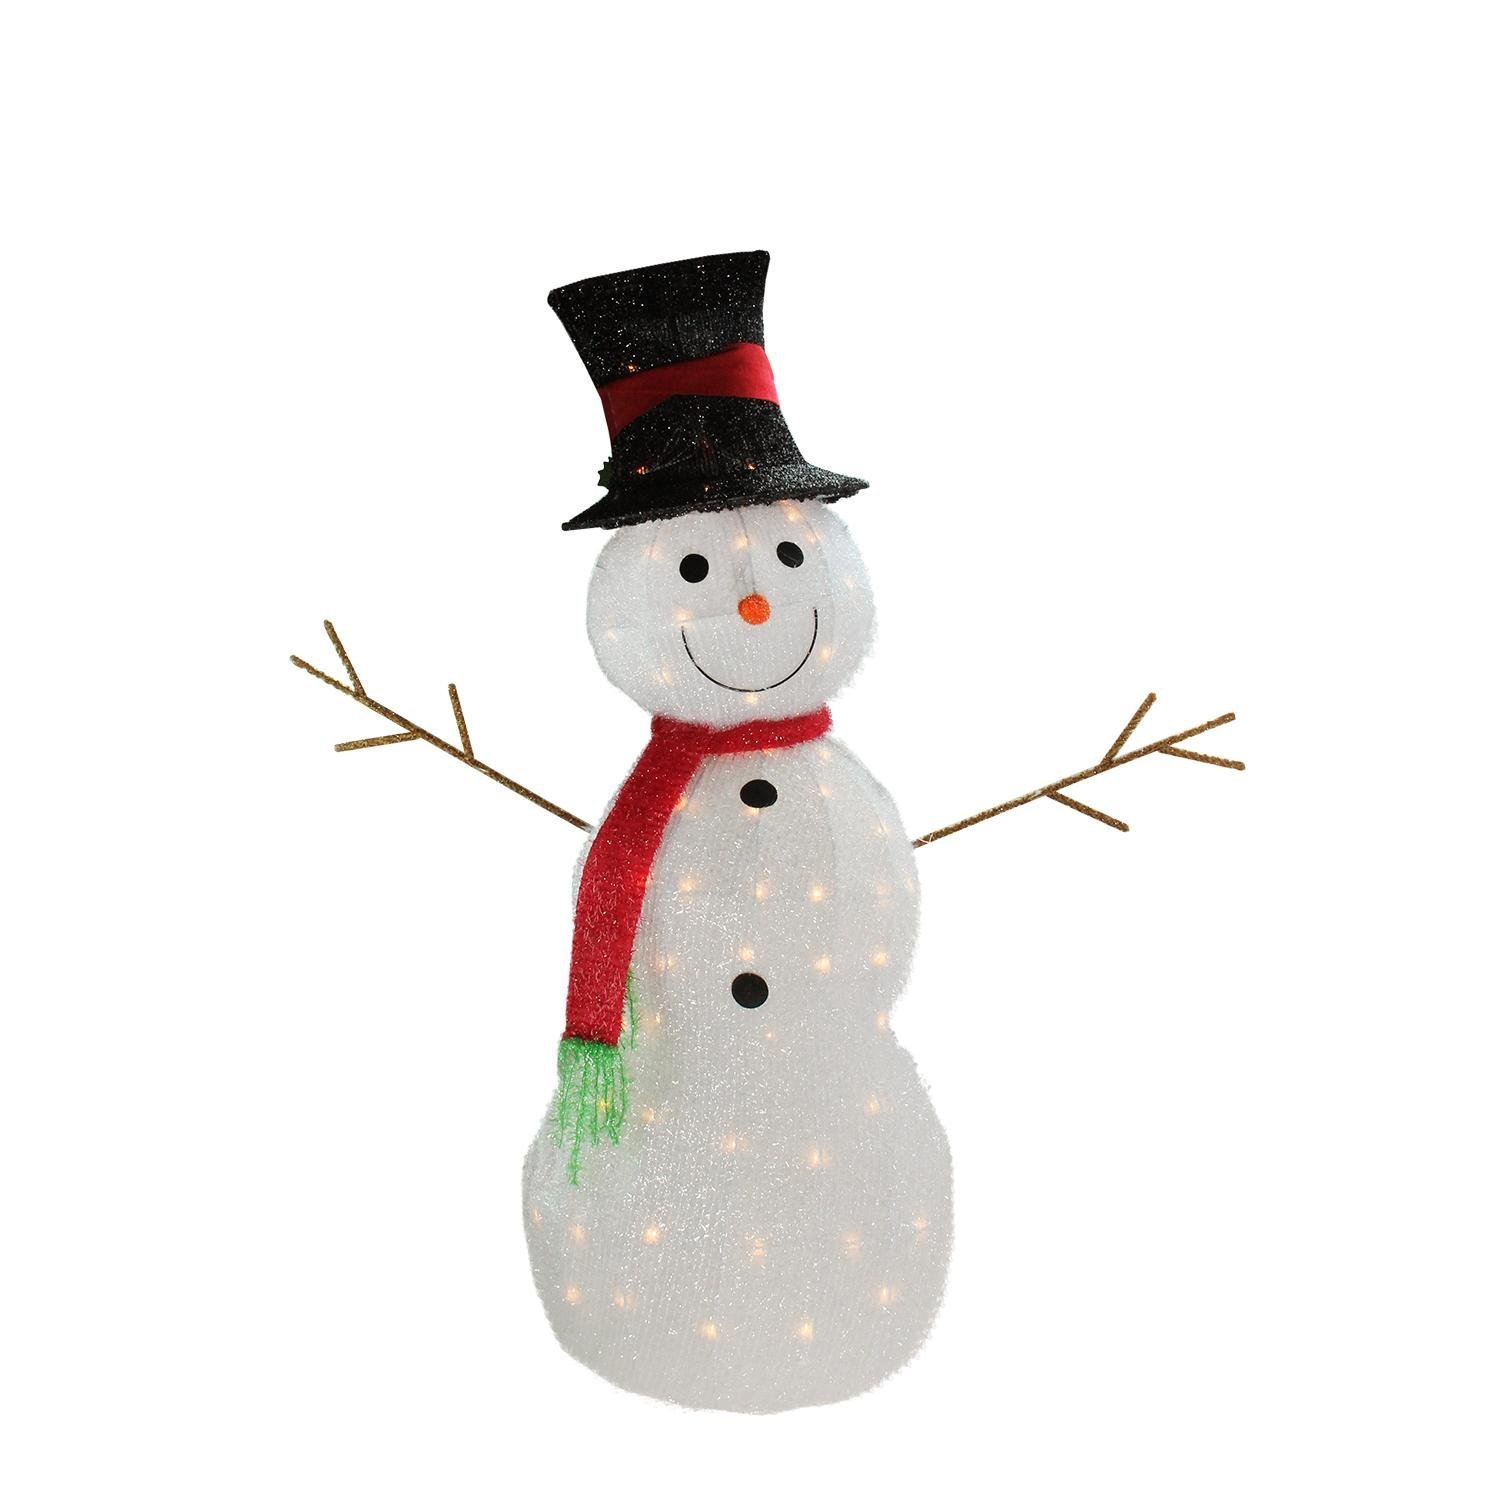 Northlight Lighted 3-D Tinsel Snowman with Top Hat Christmas Yard Art Decoration, 48'', White